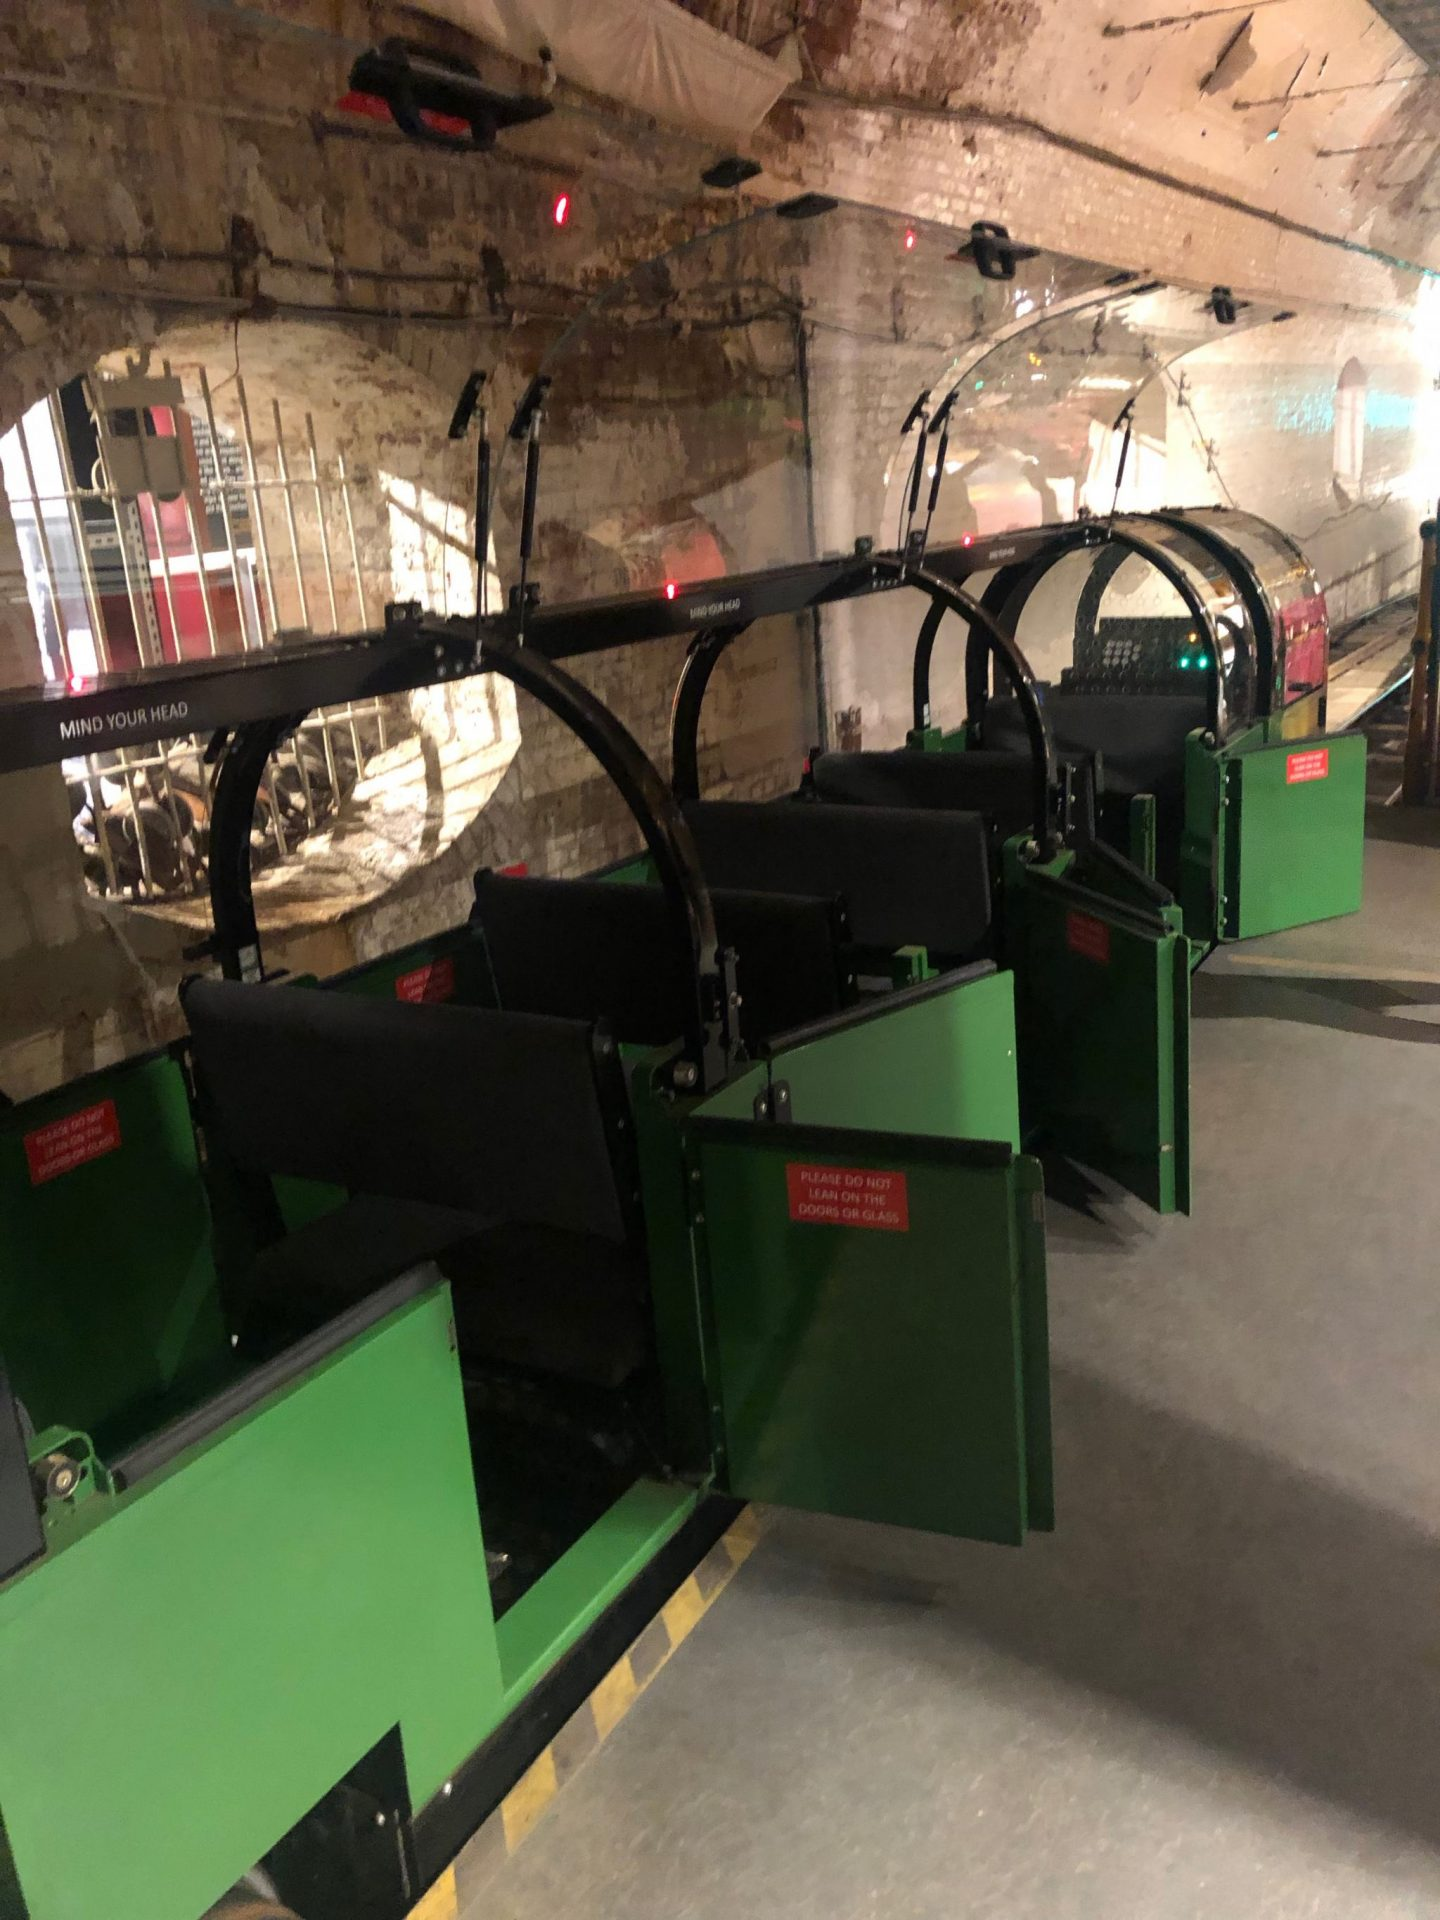 The Mail Rail underground at the Postal Museum on the Clerkenwell site.